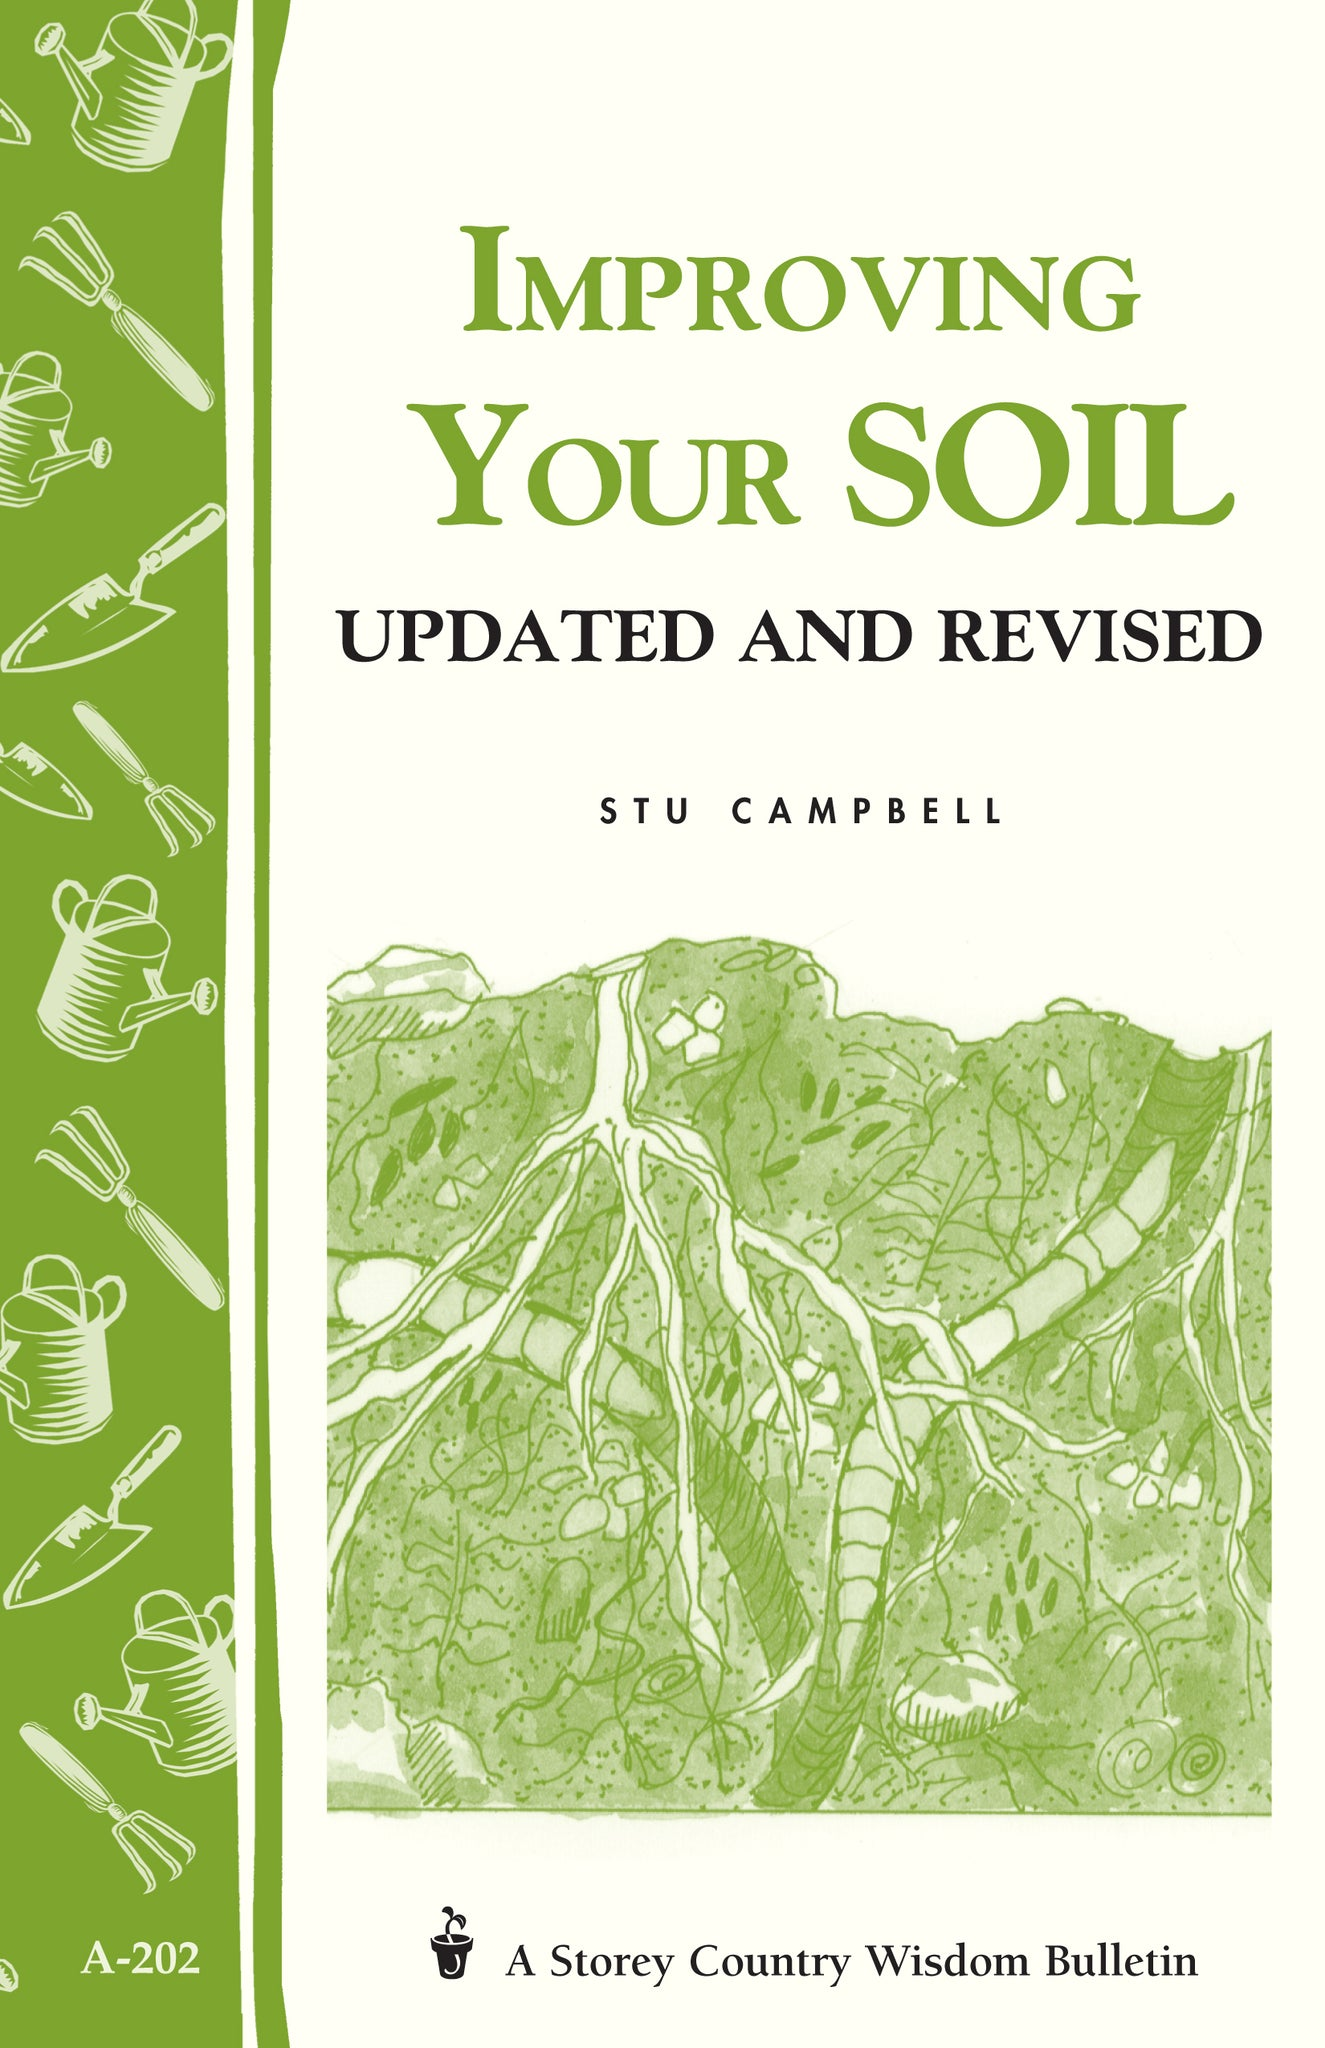 Book:  Improving Your Soil